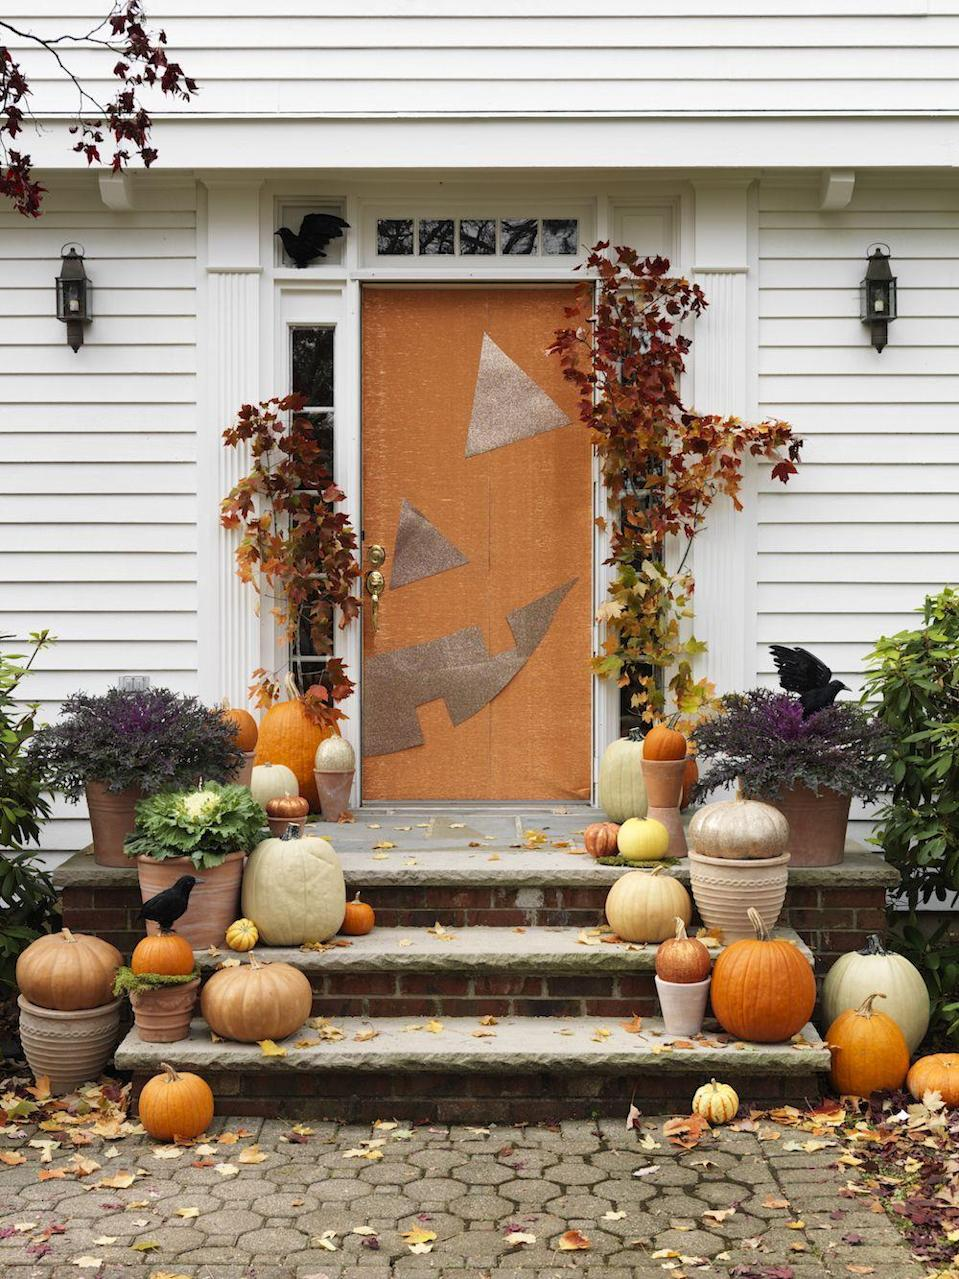 """<p>If you're pressed for time, go for a jack-o-lantern door. Begin by using masking tape to hang orange gift wrapping paper. Then, enhance the look by cutting an eye, nose, and mouth from gold paper. You can finish the look by adding tree branches, pumpkins, cabbages, and faux crows. <br><br><a class=""""link rapid-noclick-resp"""" href=""""https://www.amazon.com/JAM-PAPER-Gift-Wrap-Individually/dp/B01DAF8H8S?tag=syn-yahoo-20&ascsubtag=%5Bartid%7C10055.g.32948621%5Bsrc%7Cyahoo-us"""" rel=""""nofollow noopener"""" target=""""_blank"""" data-ylk=""""slk:SHOP ORANGE GIFT WRAP"""">SHOP ORANGE GIFT WRAP</a></p>"""